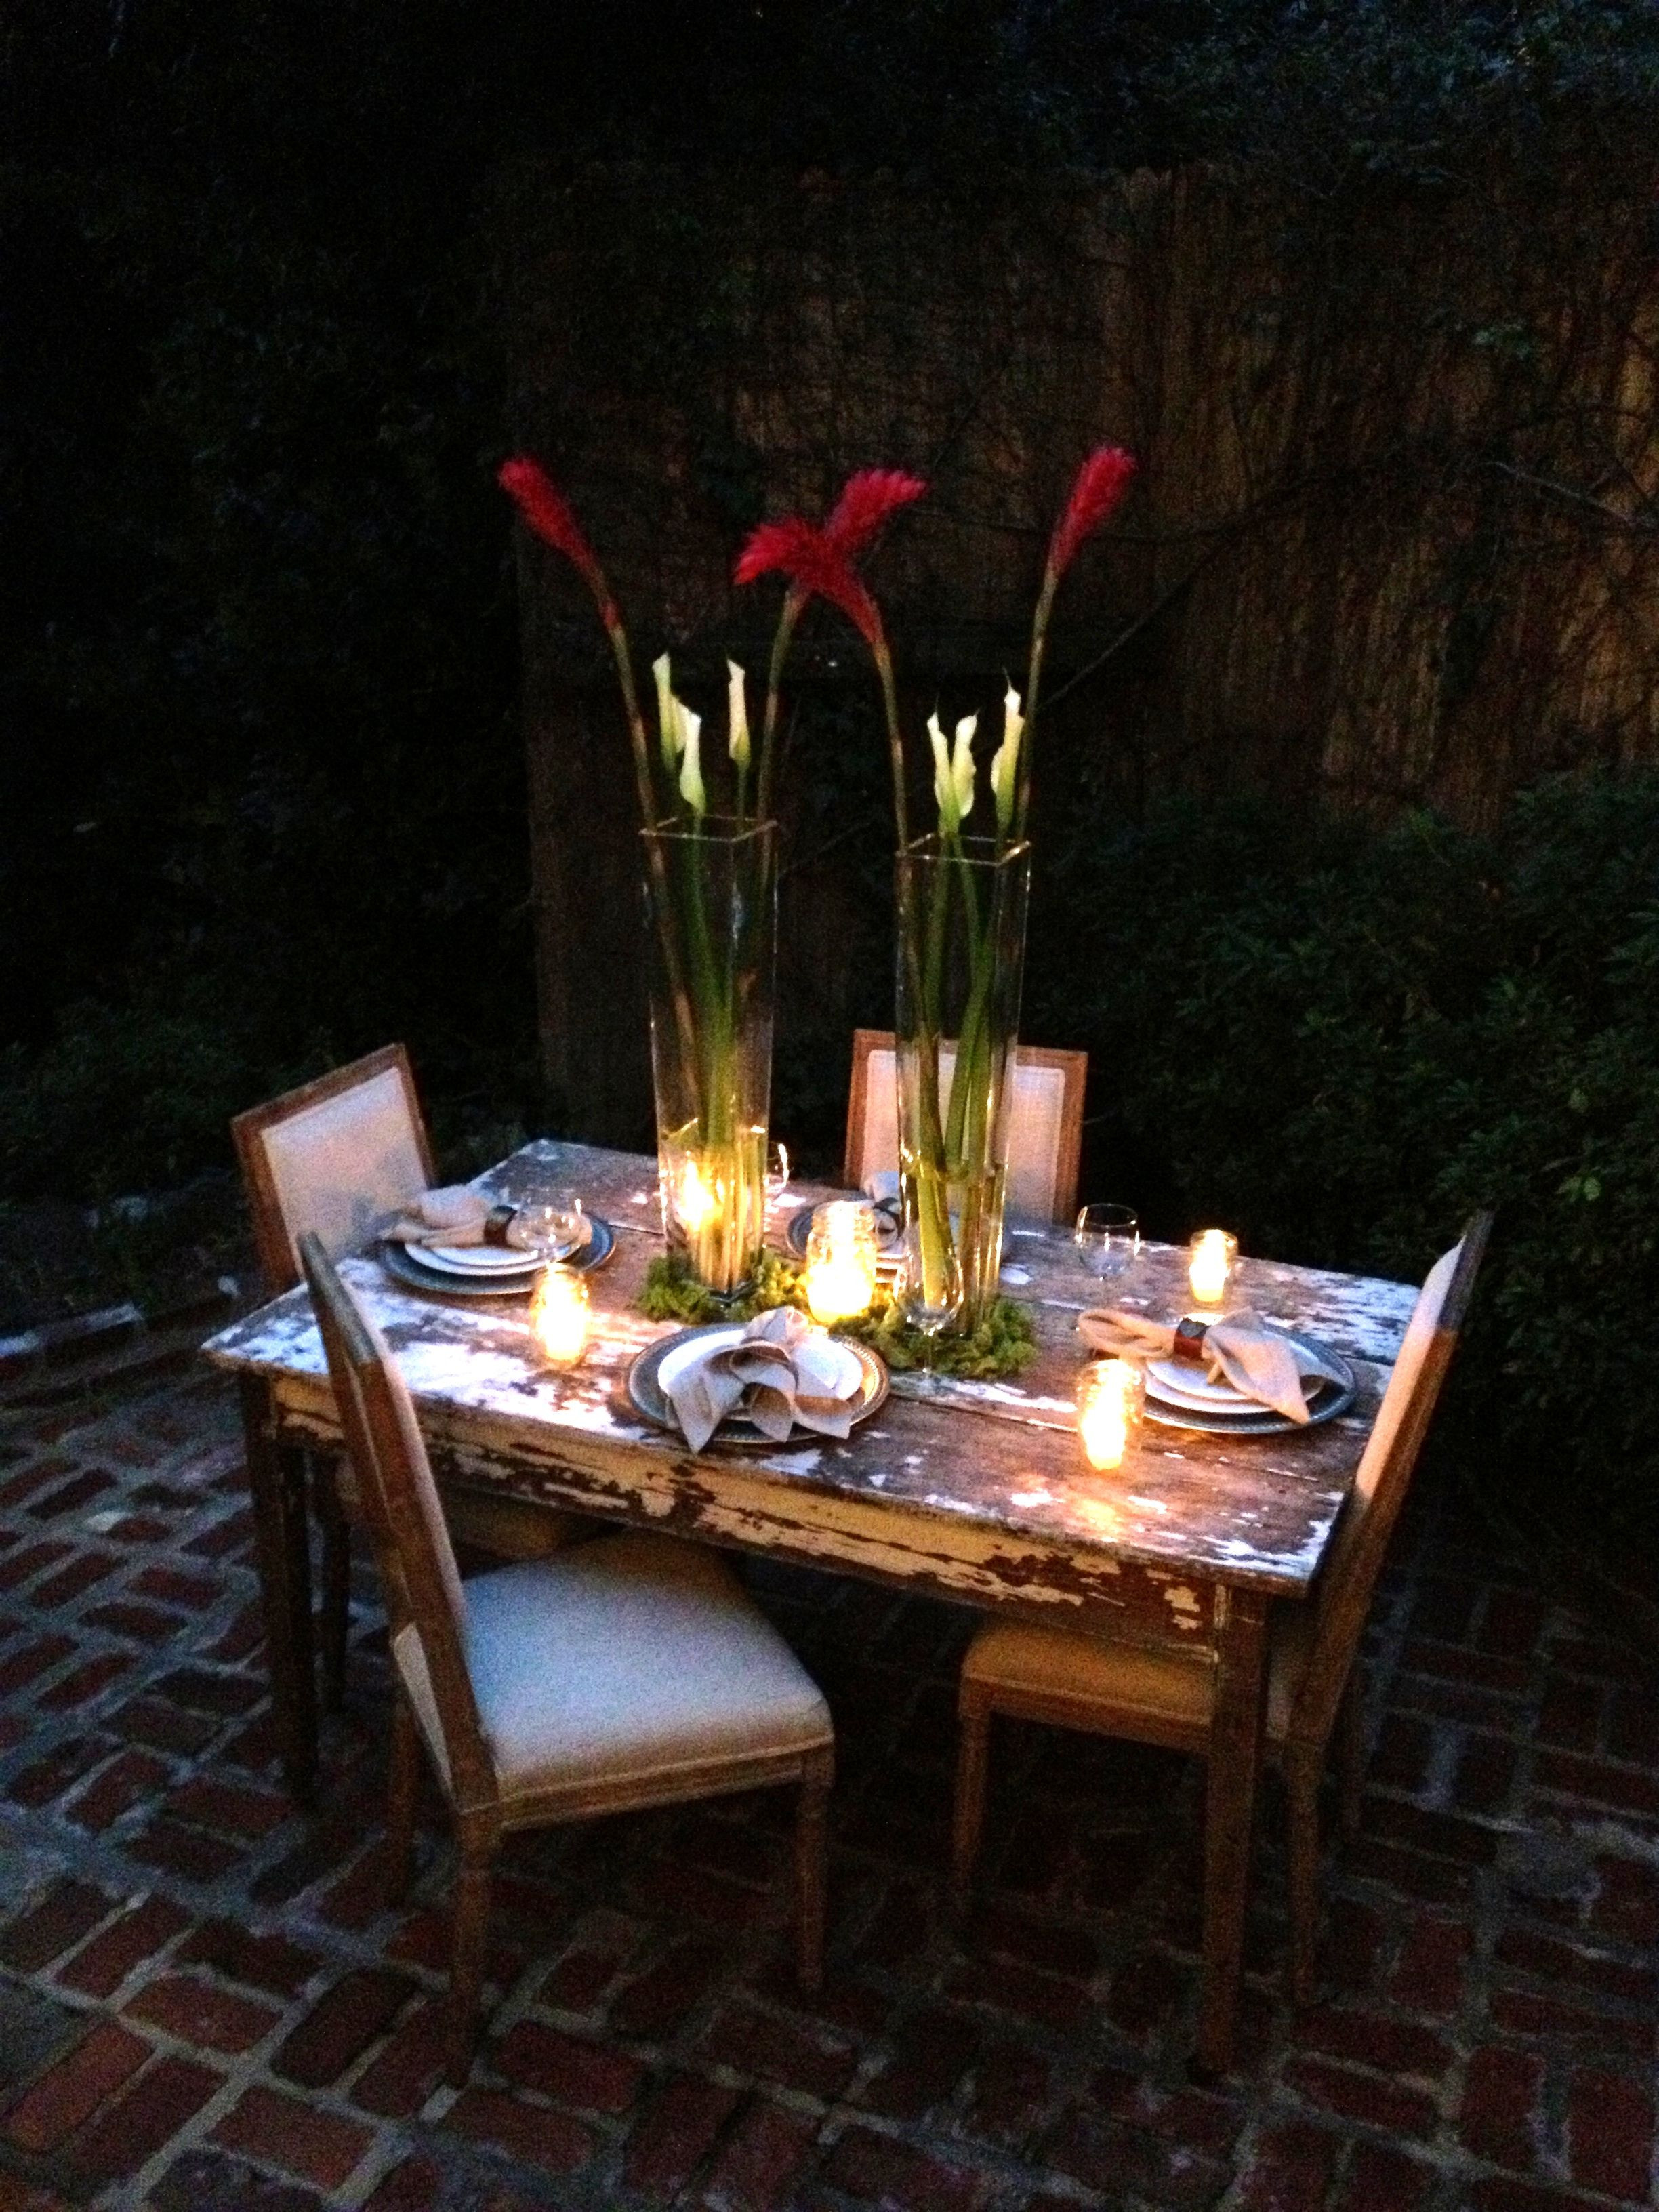 Couples Dinner Party Ideas  Couples dinner table setting that would make for a fun